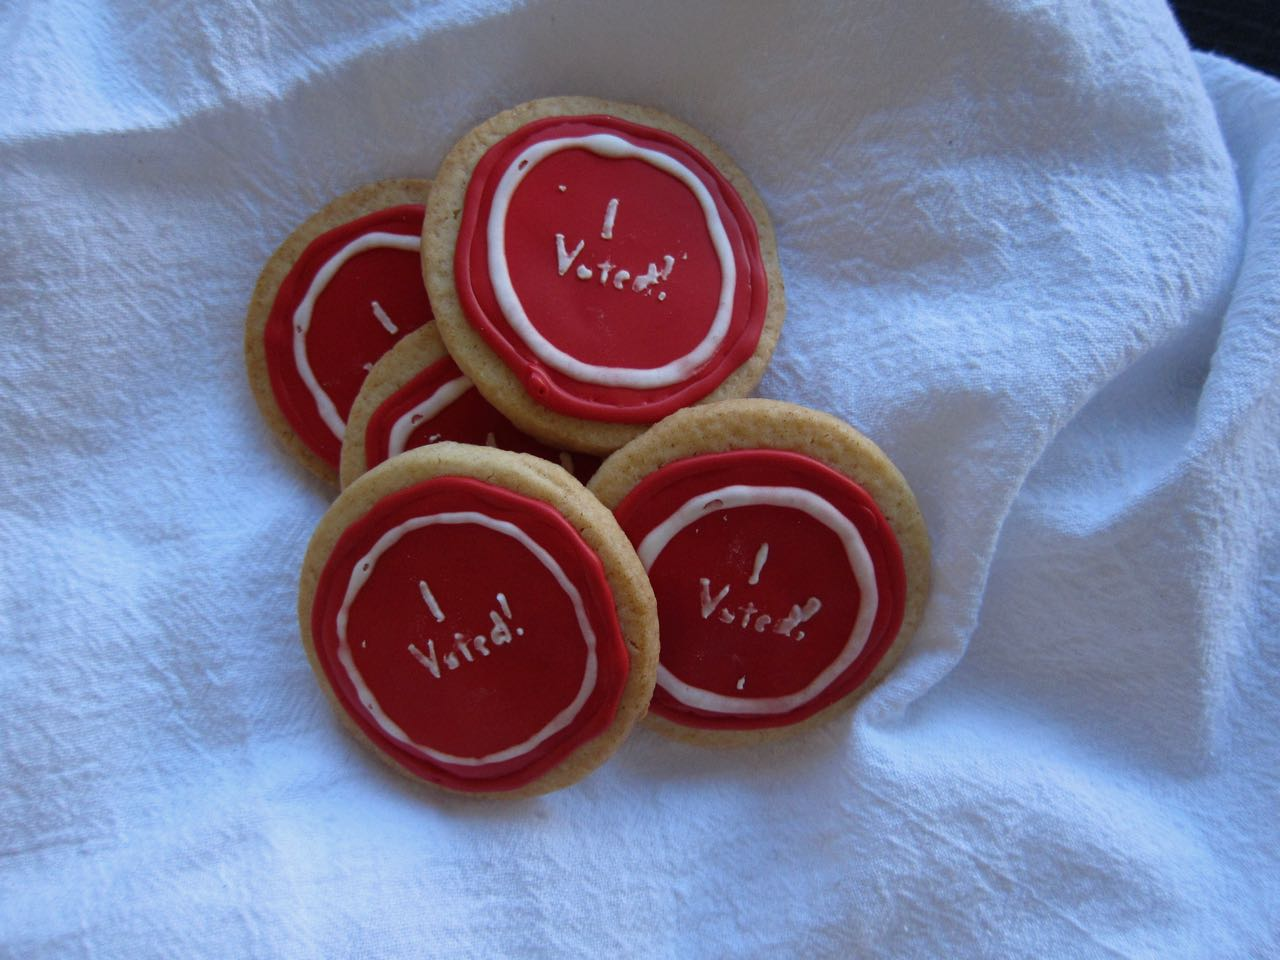 I Voted Sticker Cookies